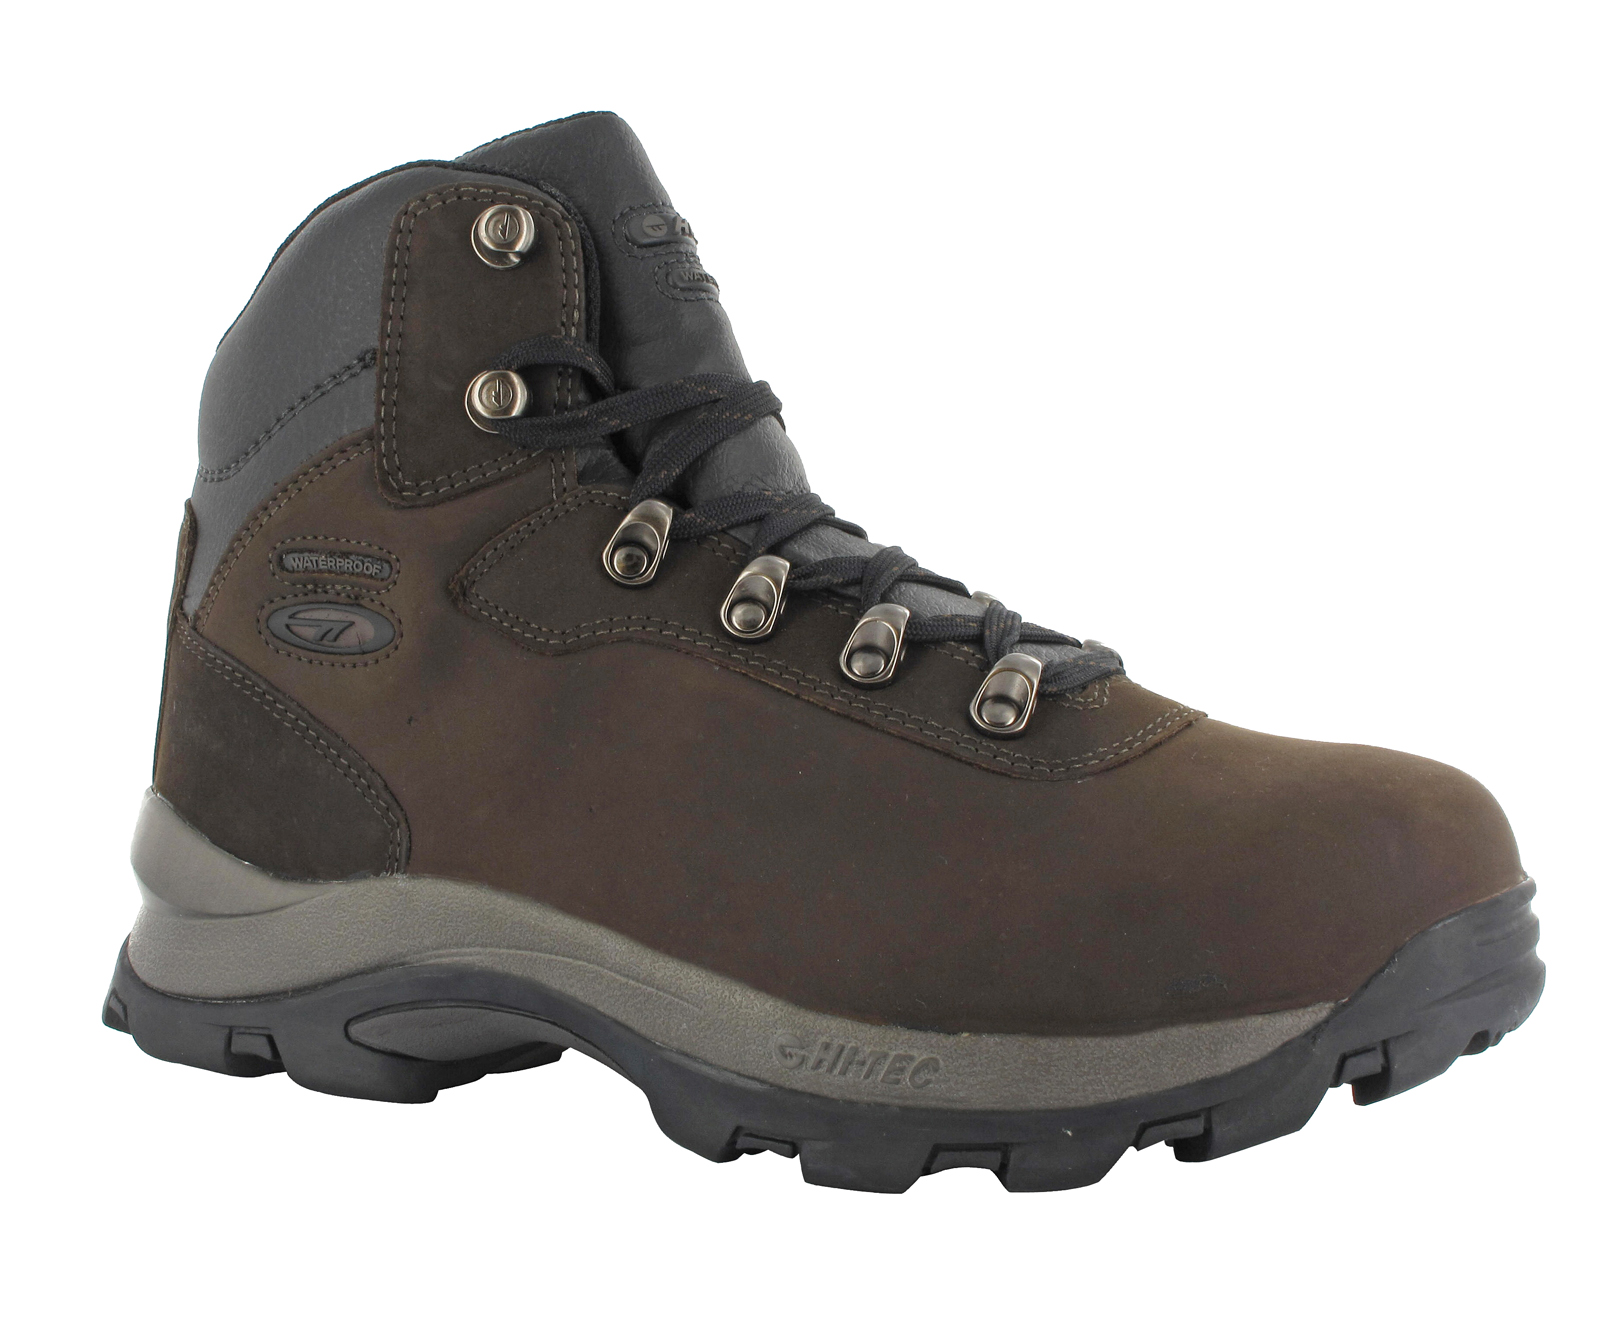 New-Mens-Hi-Tec-Brown-Waterproof-Nubuck-Leather-Altitude-Walking-Boots-Size-6-16